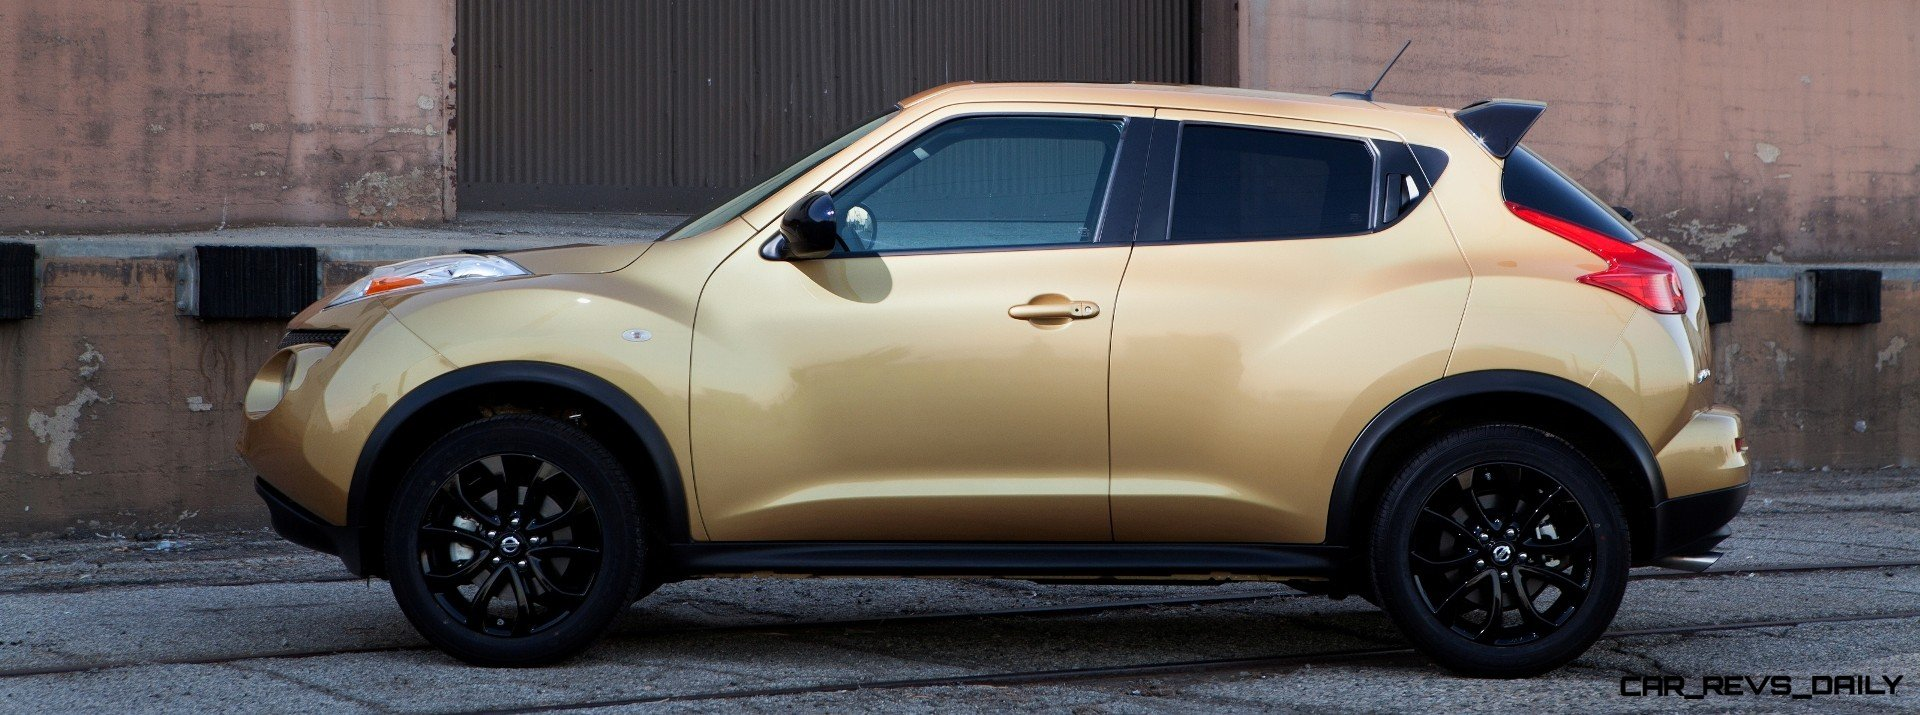 Best Cars Under 35000 >> 188HP Turbo Standard -- 2014 Nissan JUKE Midnight Edition -- 6-Sp Manual FWD From $19,000 -- AWD ...